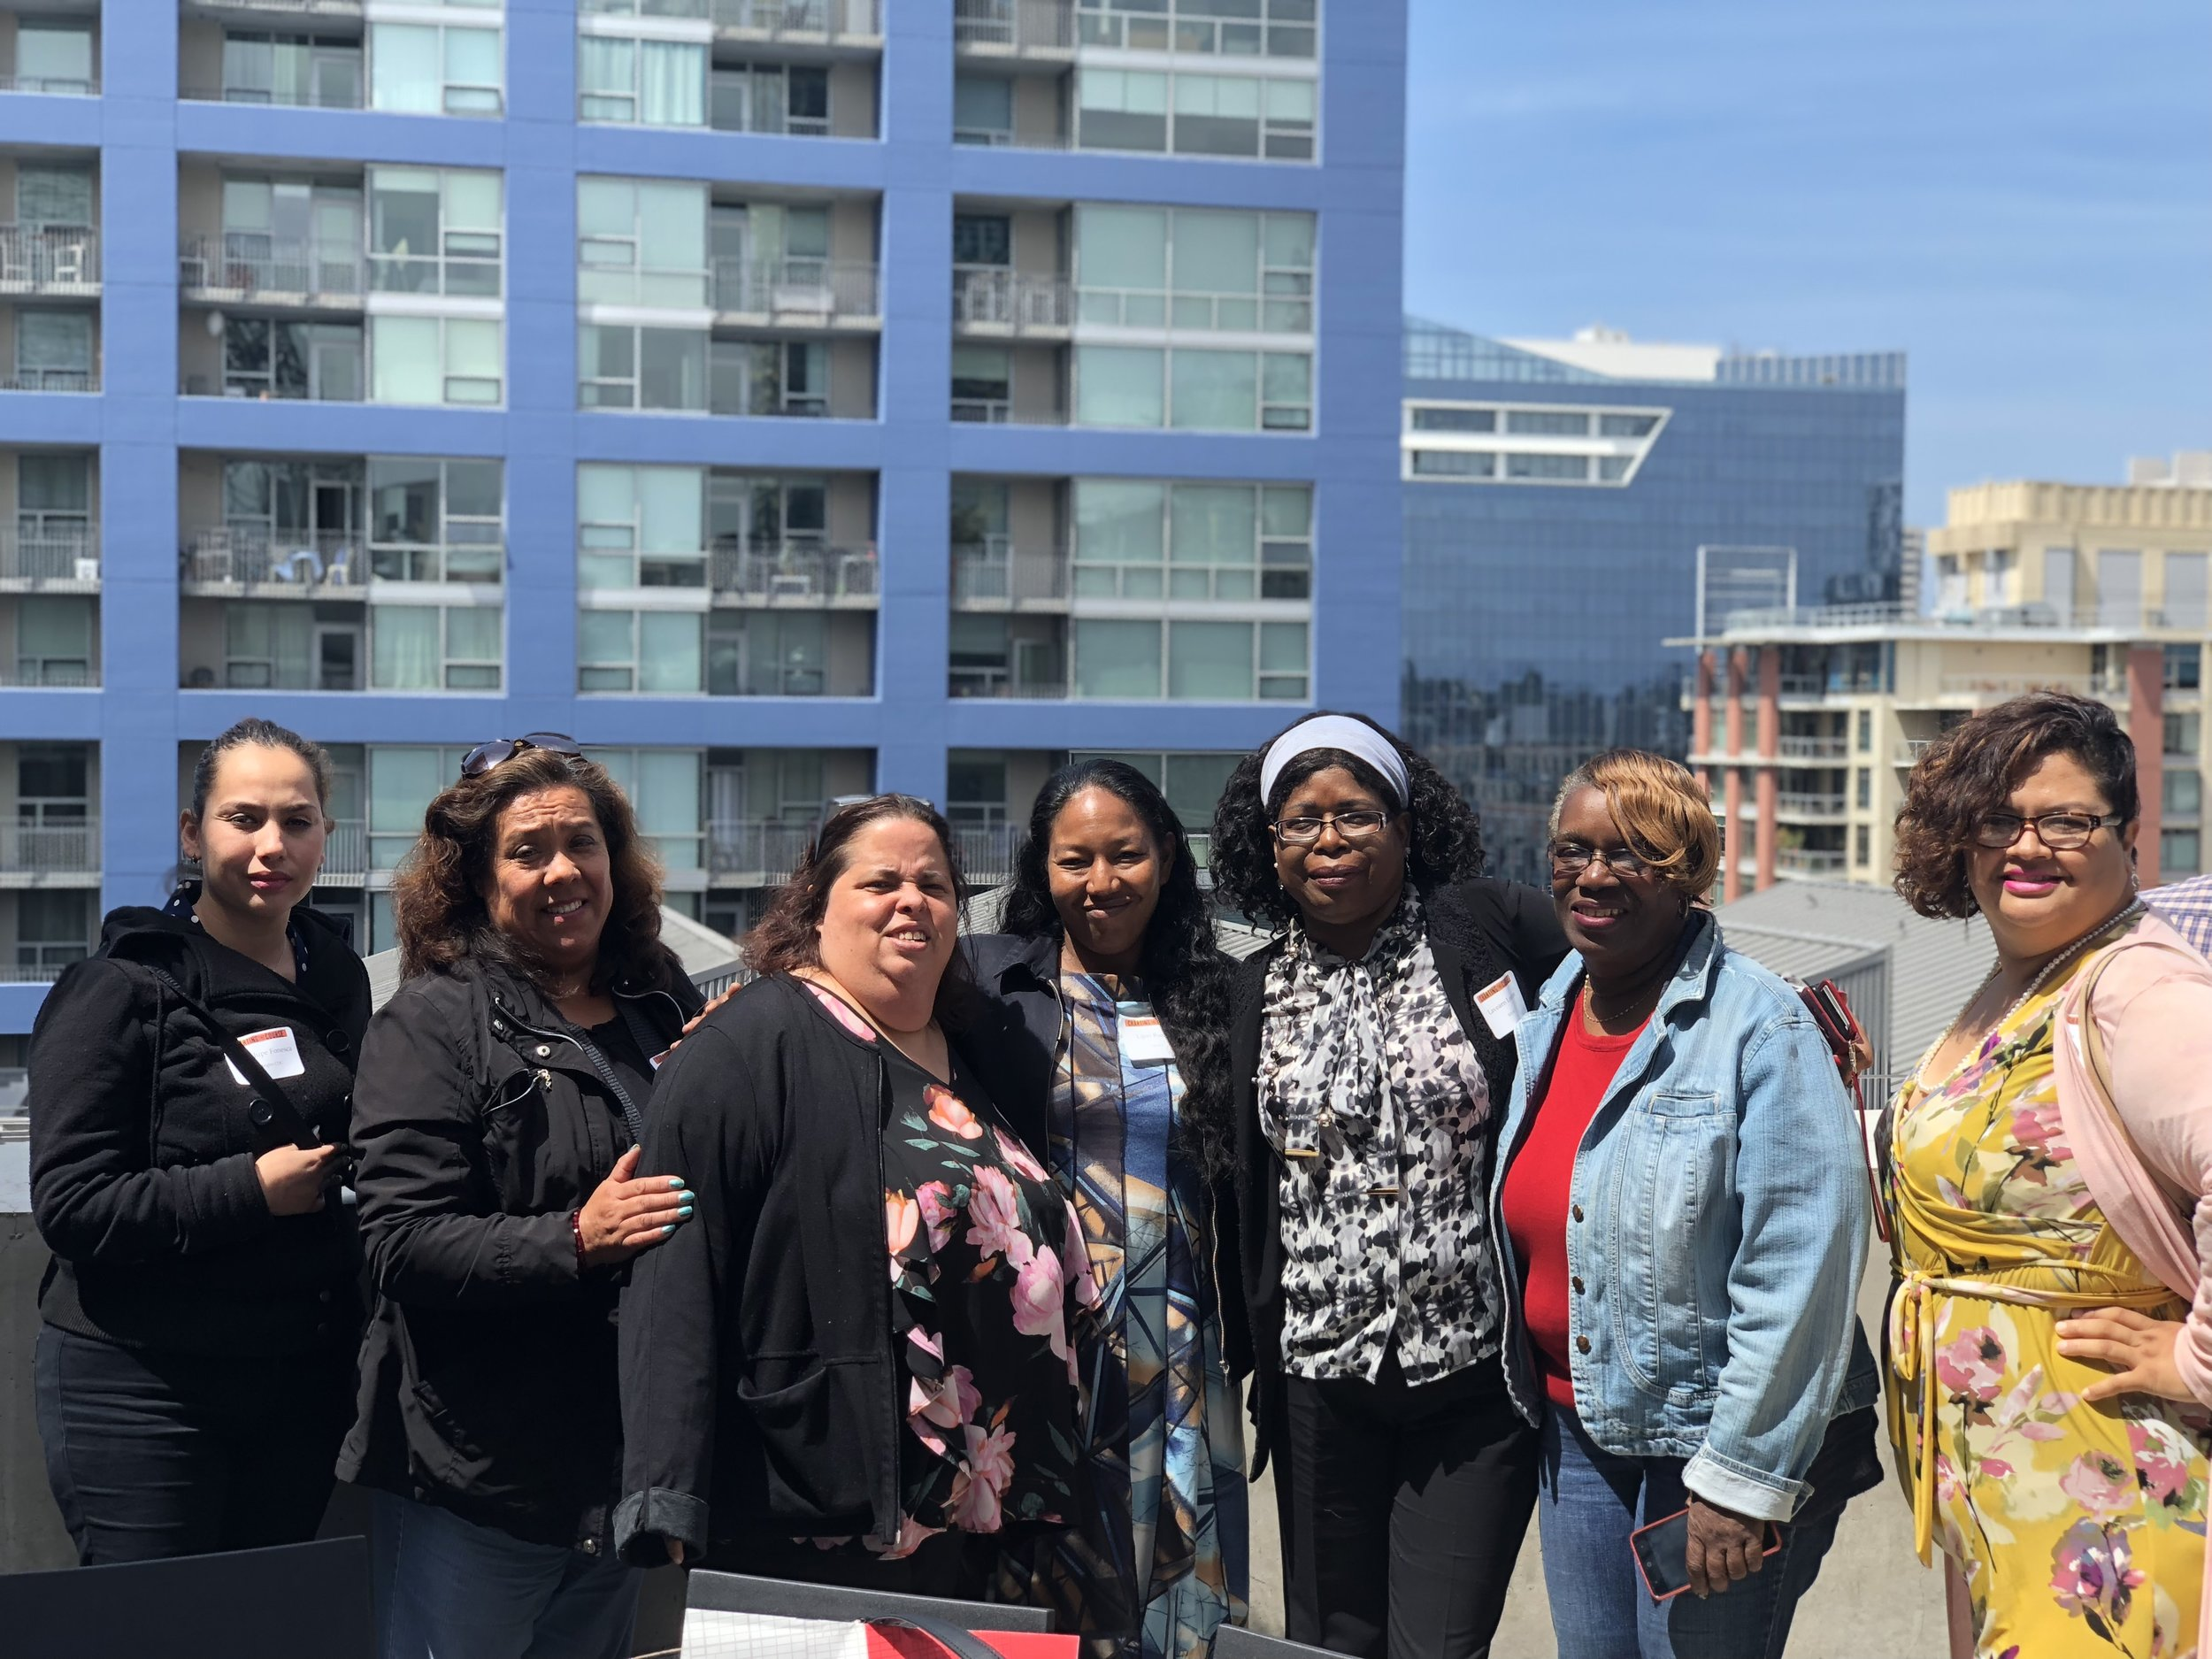 RUN Residents at SDRAFFH Housing Conference 2018